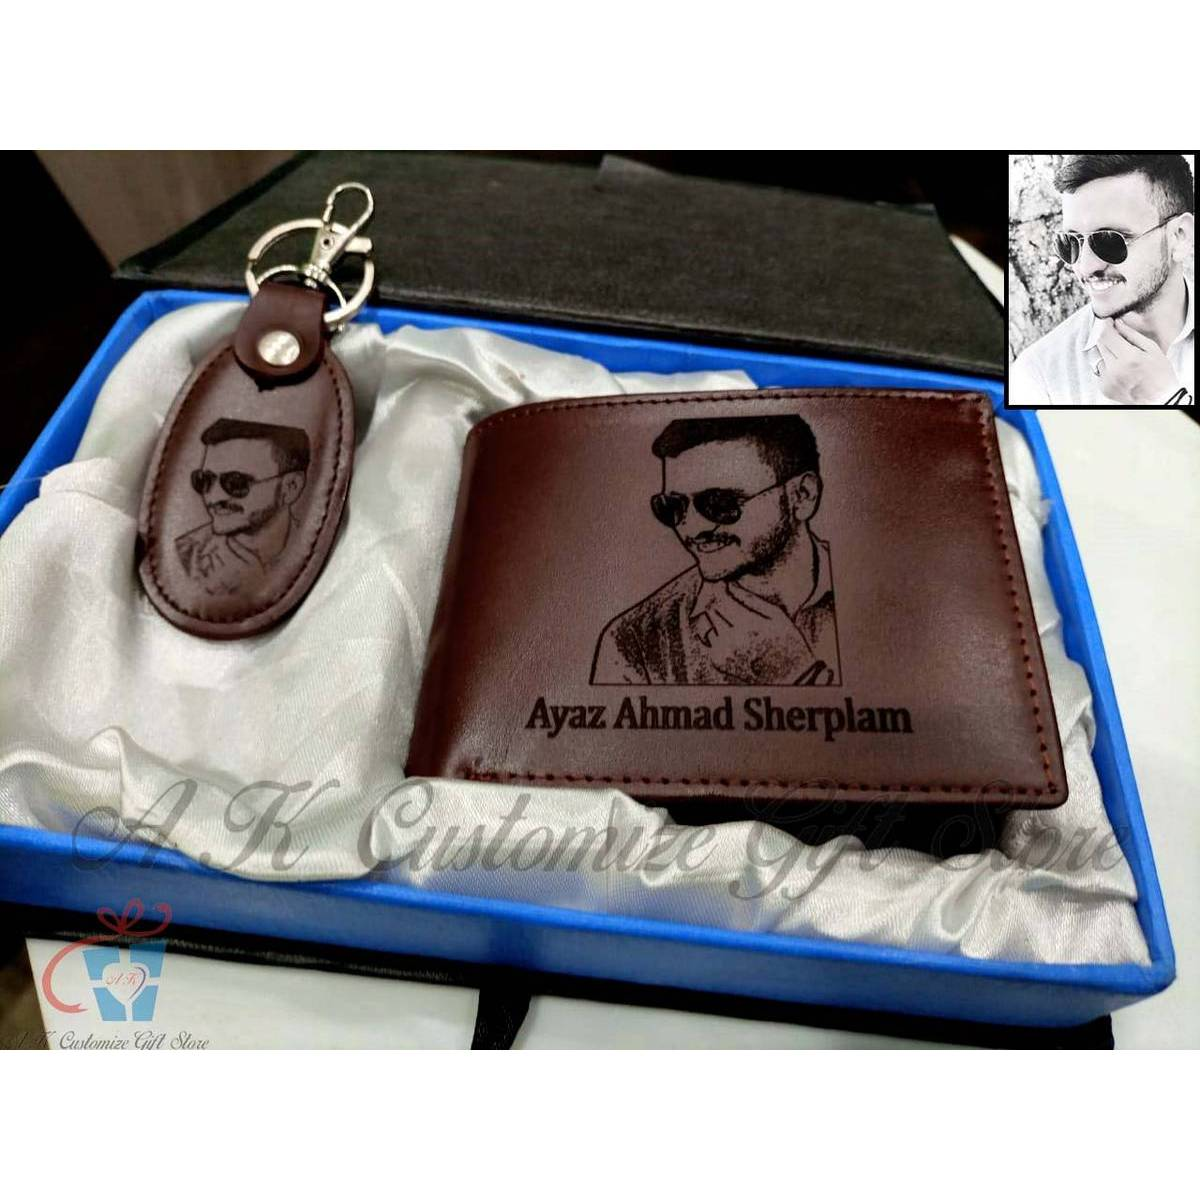 High Quality Customized Your Photo Engraved (Wallet And Key Chain) Set For Men